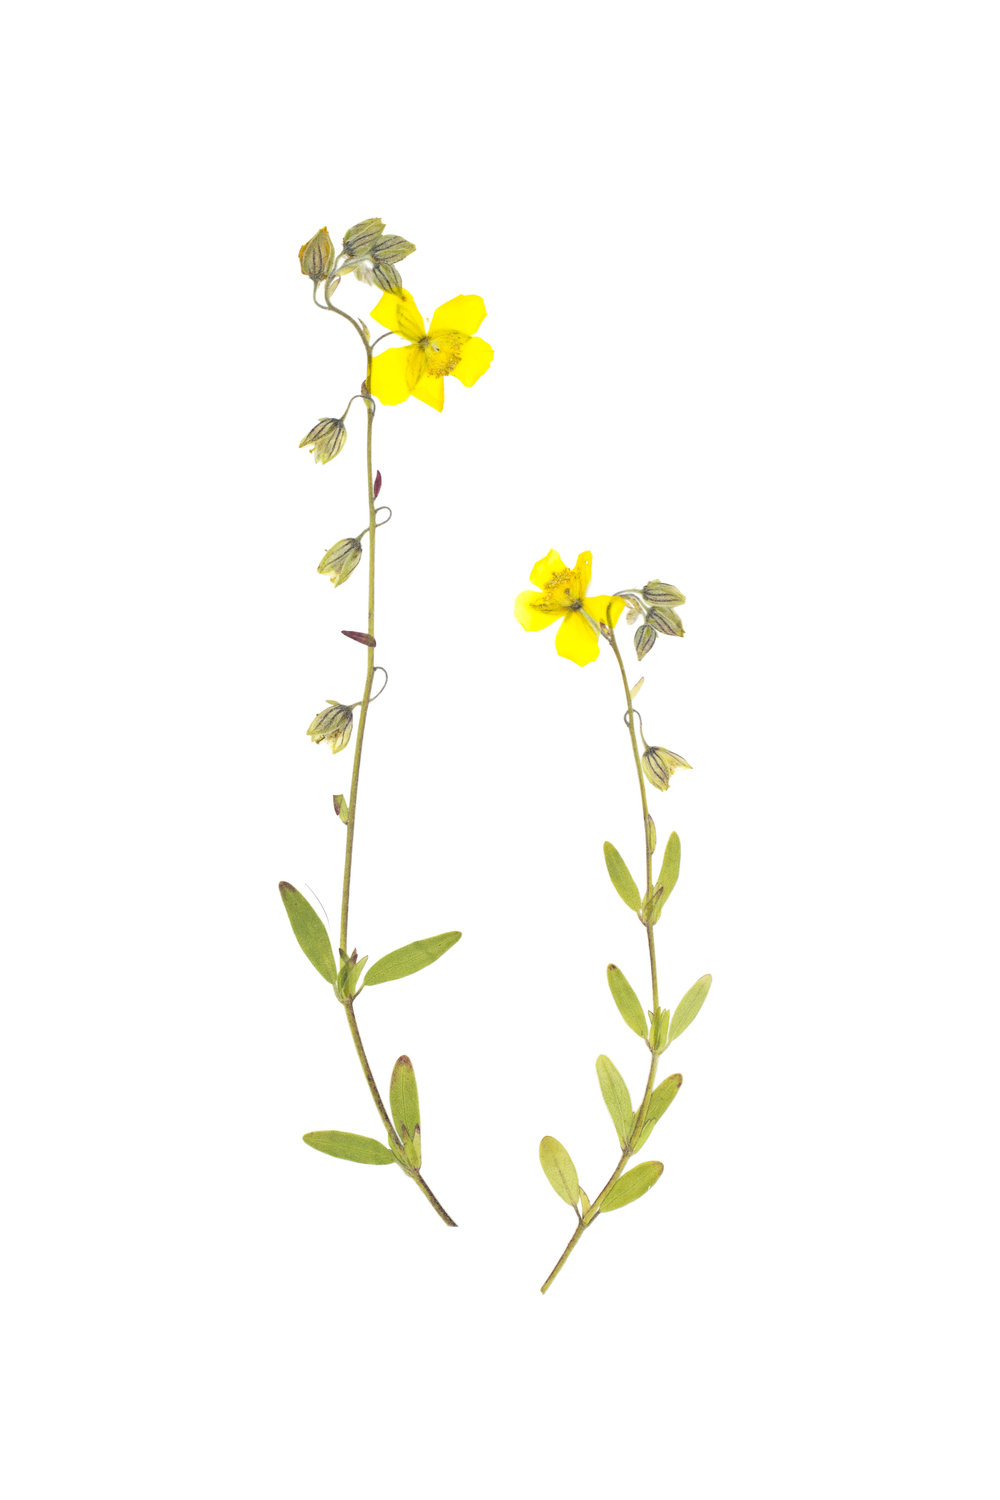 New! Oval-Leaved Rock-Rose / Helianthemum nummularium obscurum